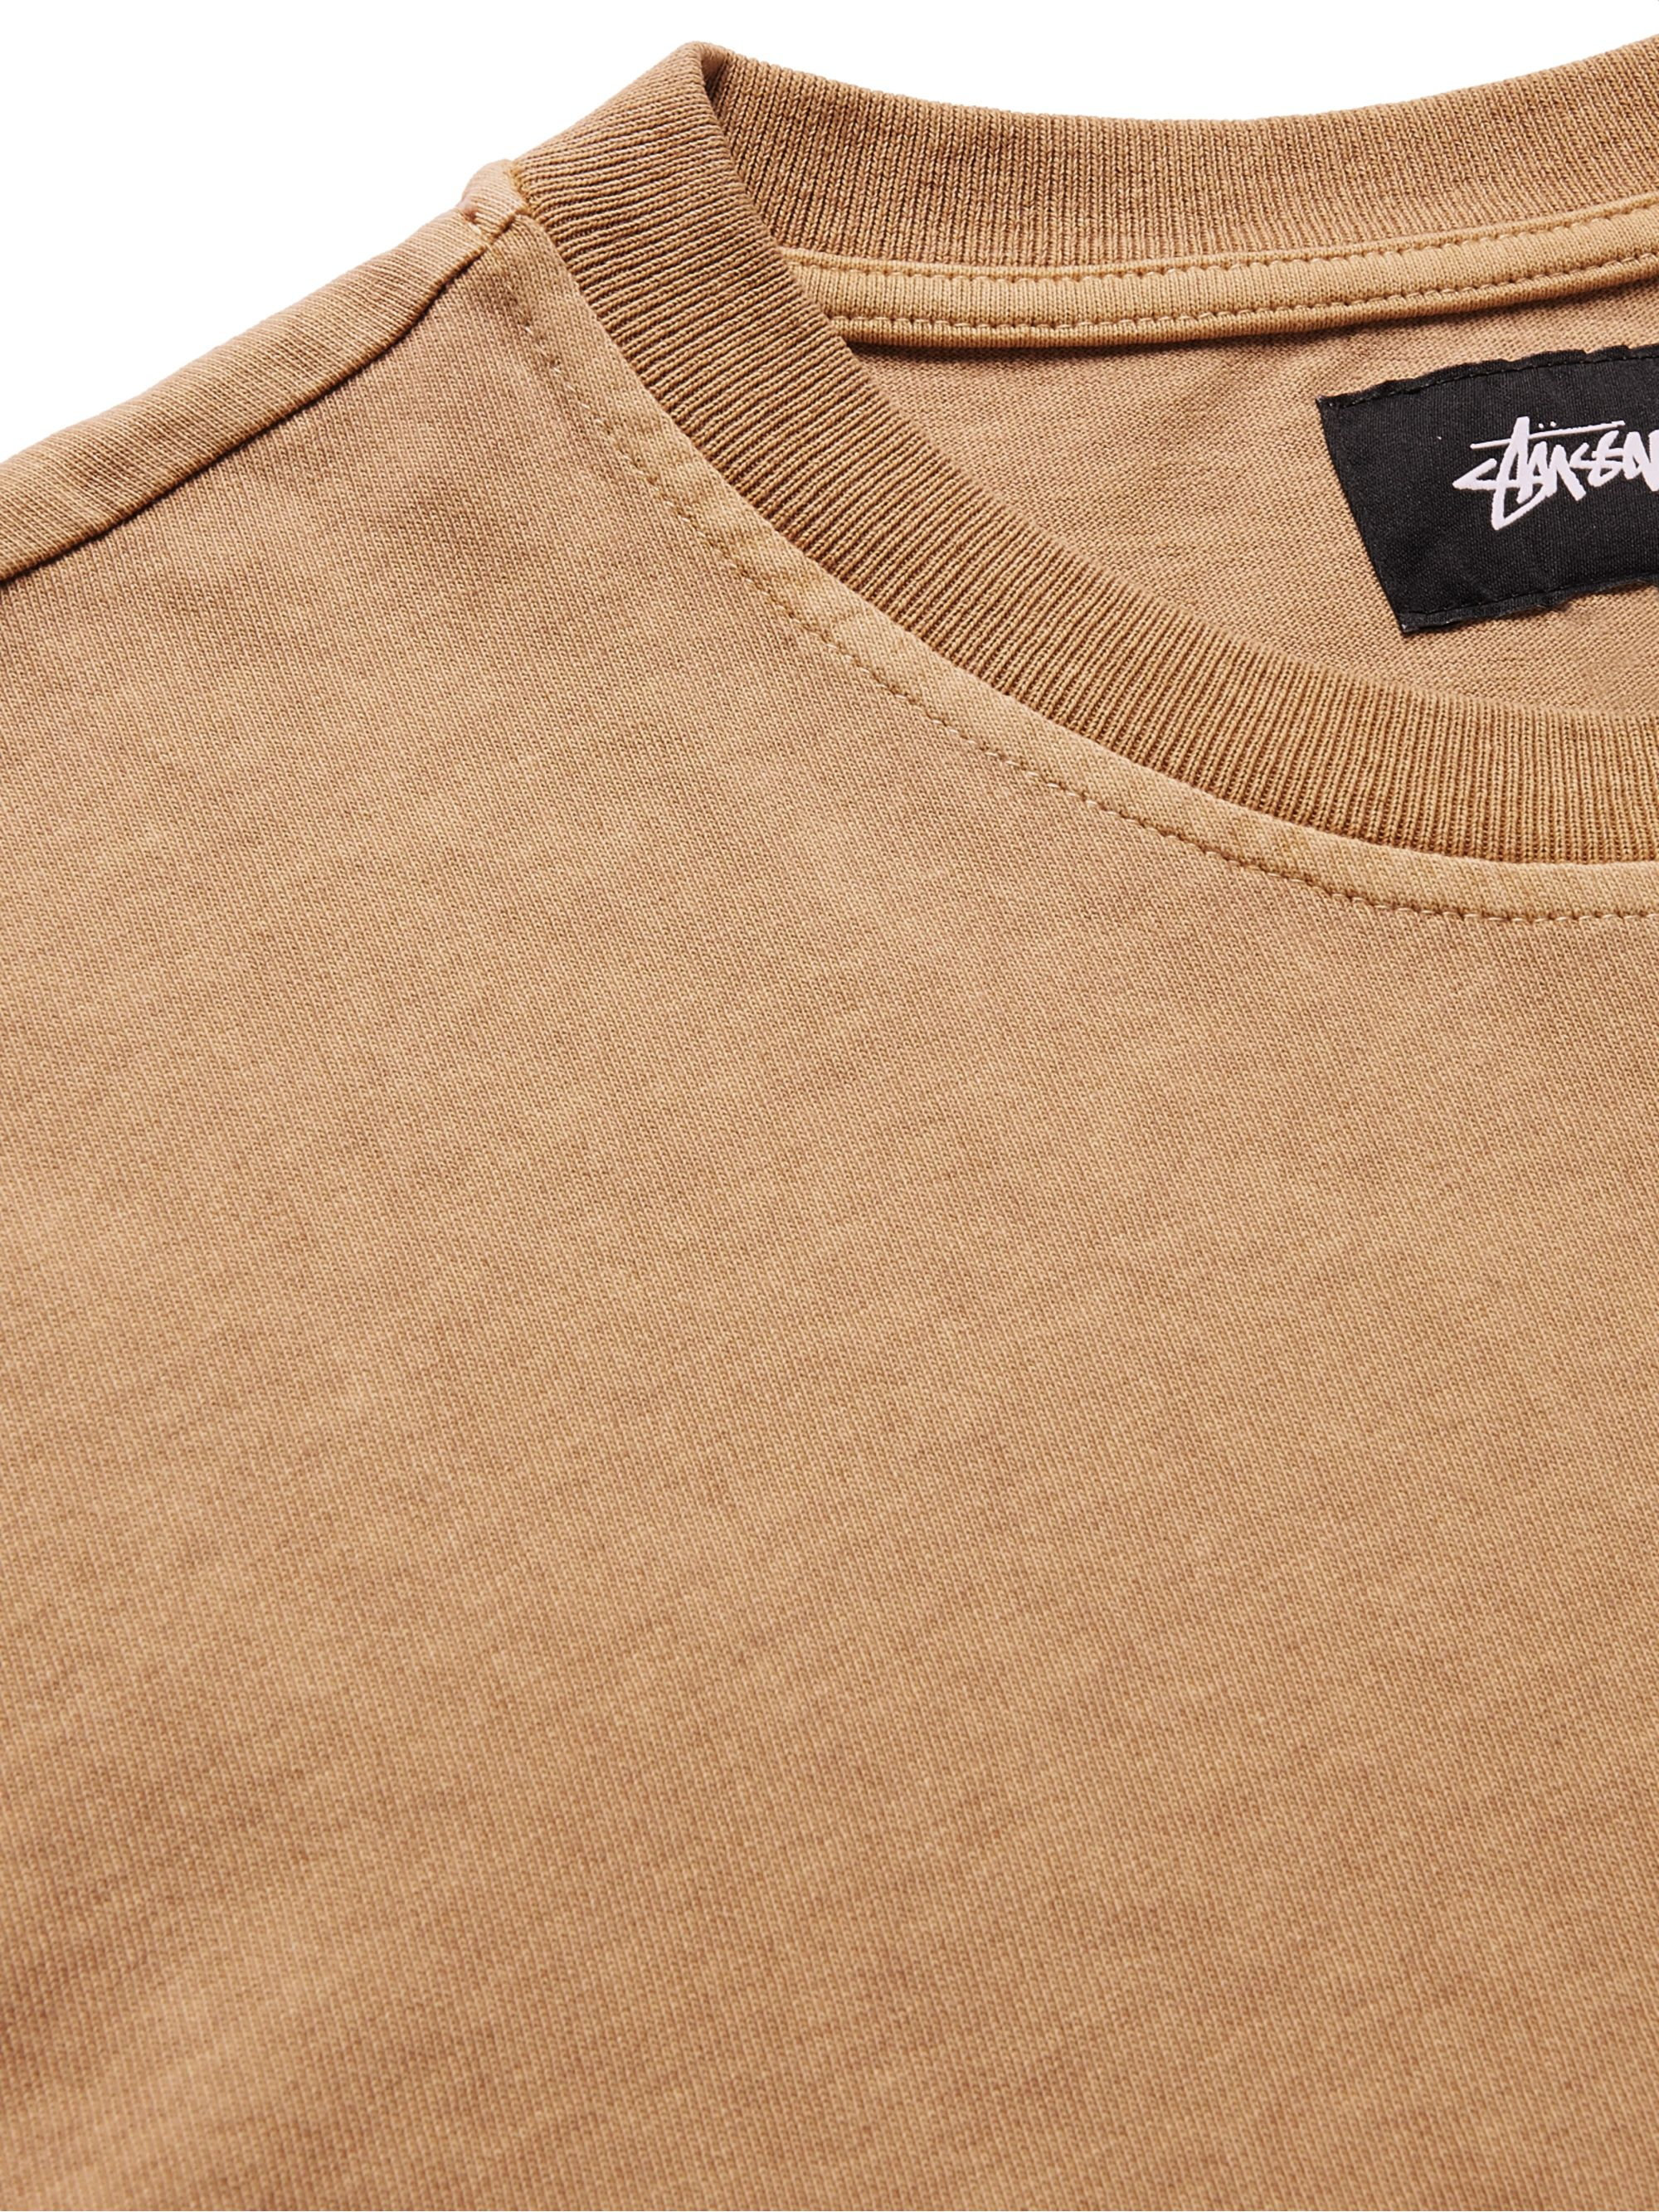 STÜSSY River Logo-Embroidered Cotton-Jersey T-Shirt